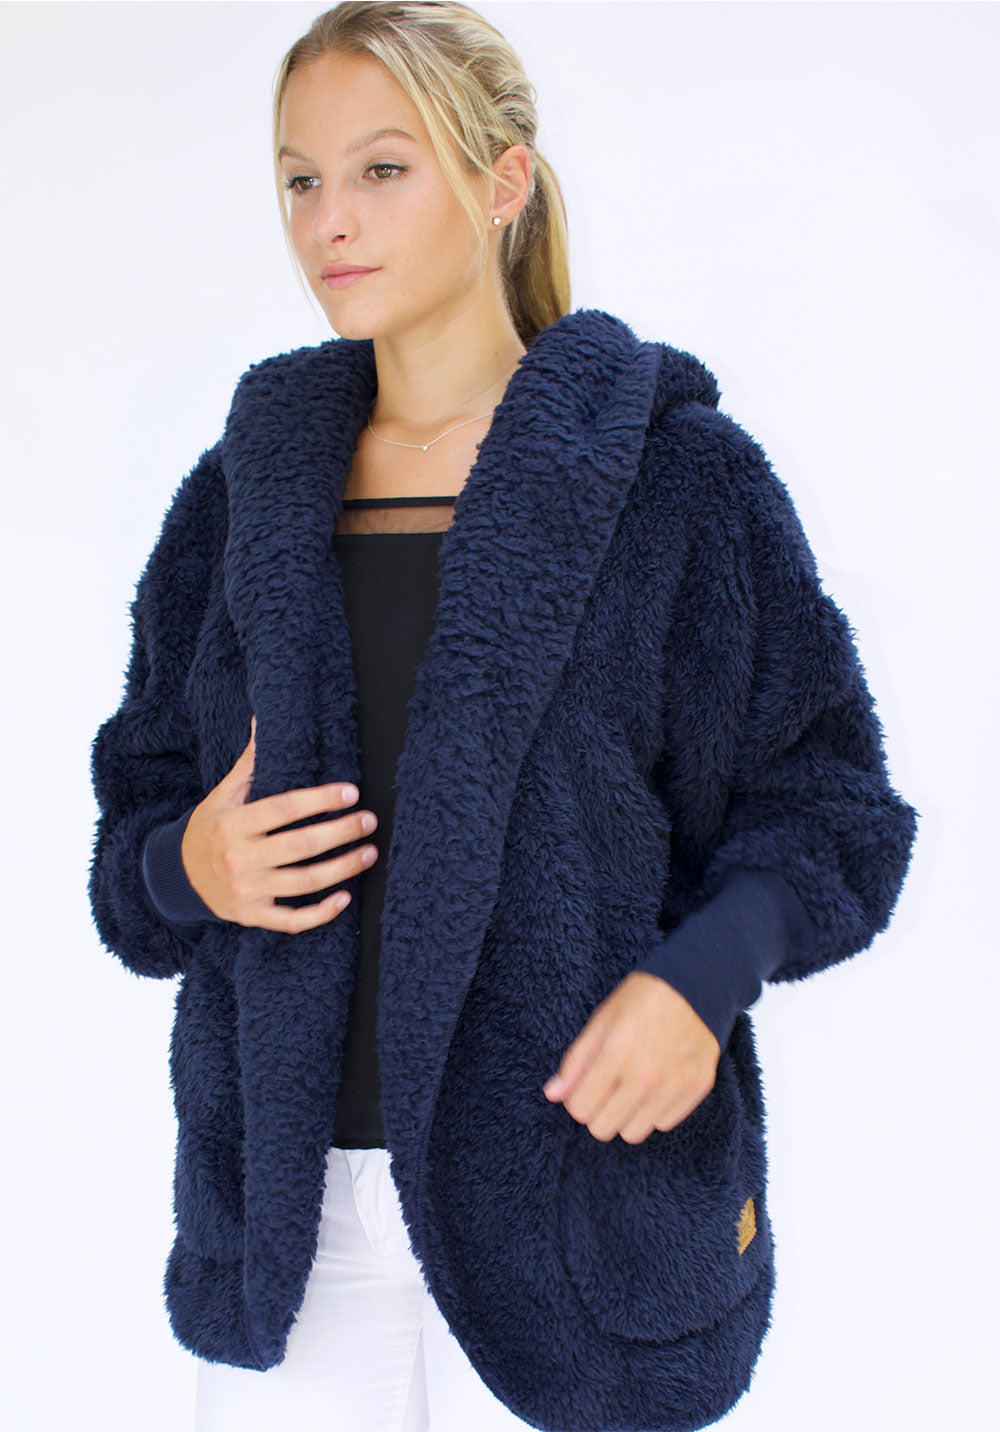 NORDIC BEACH WRAP - MIDNIGHT NAVY